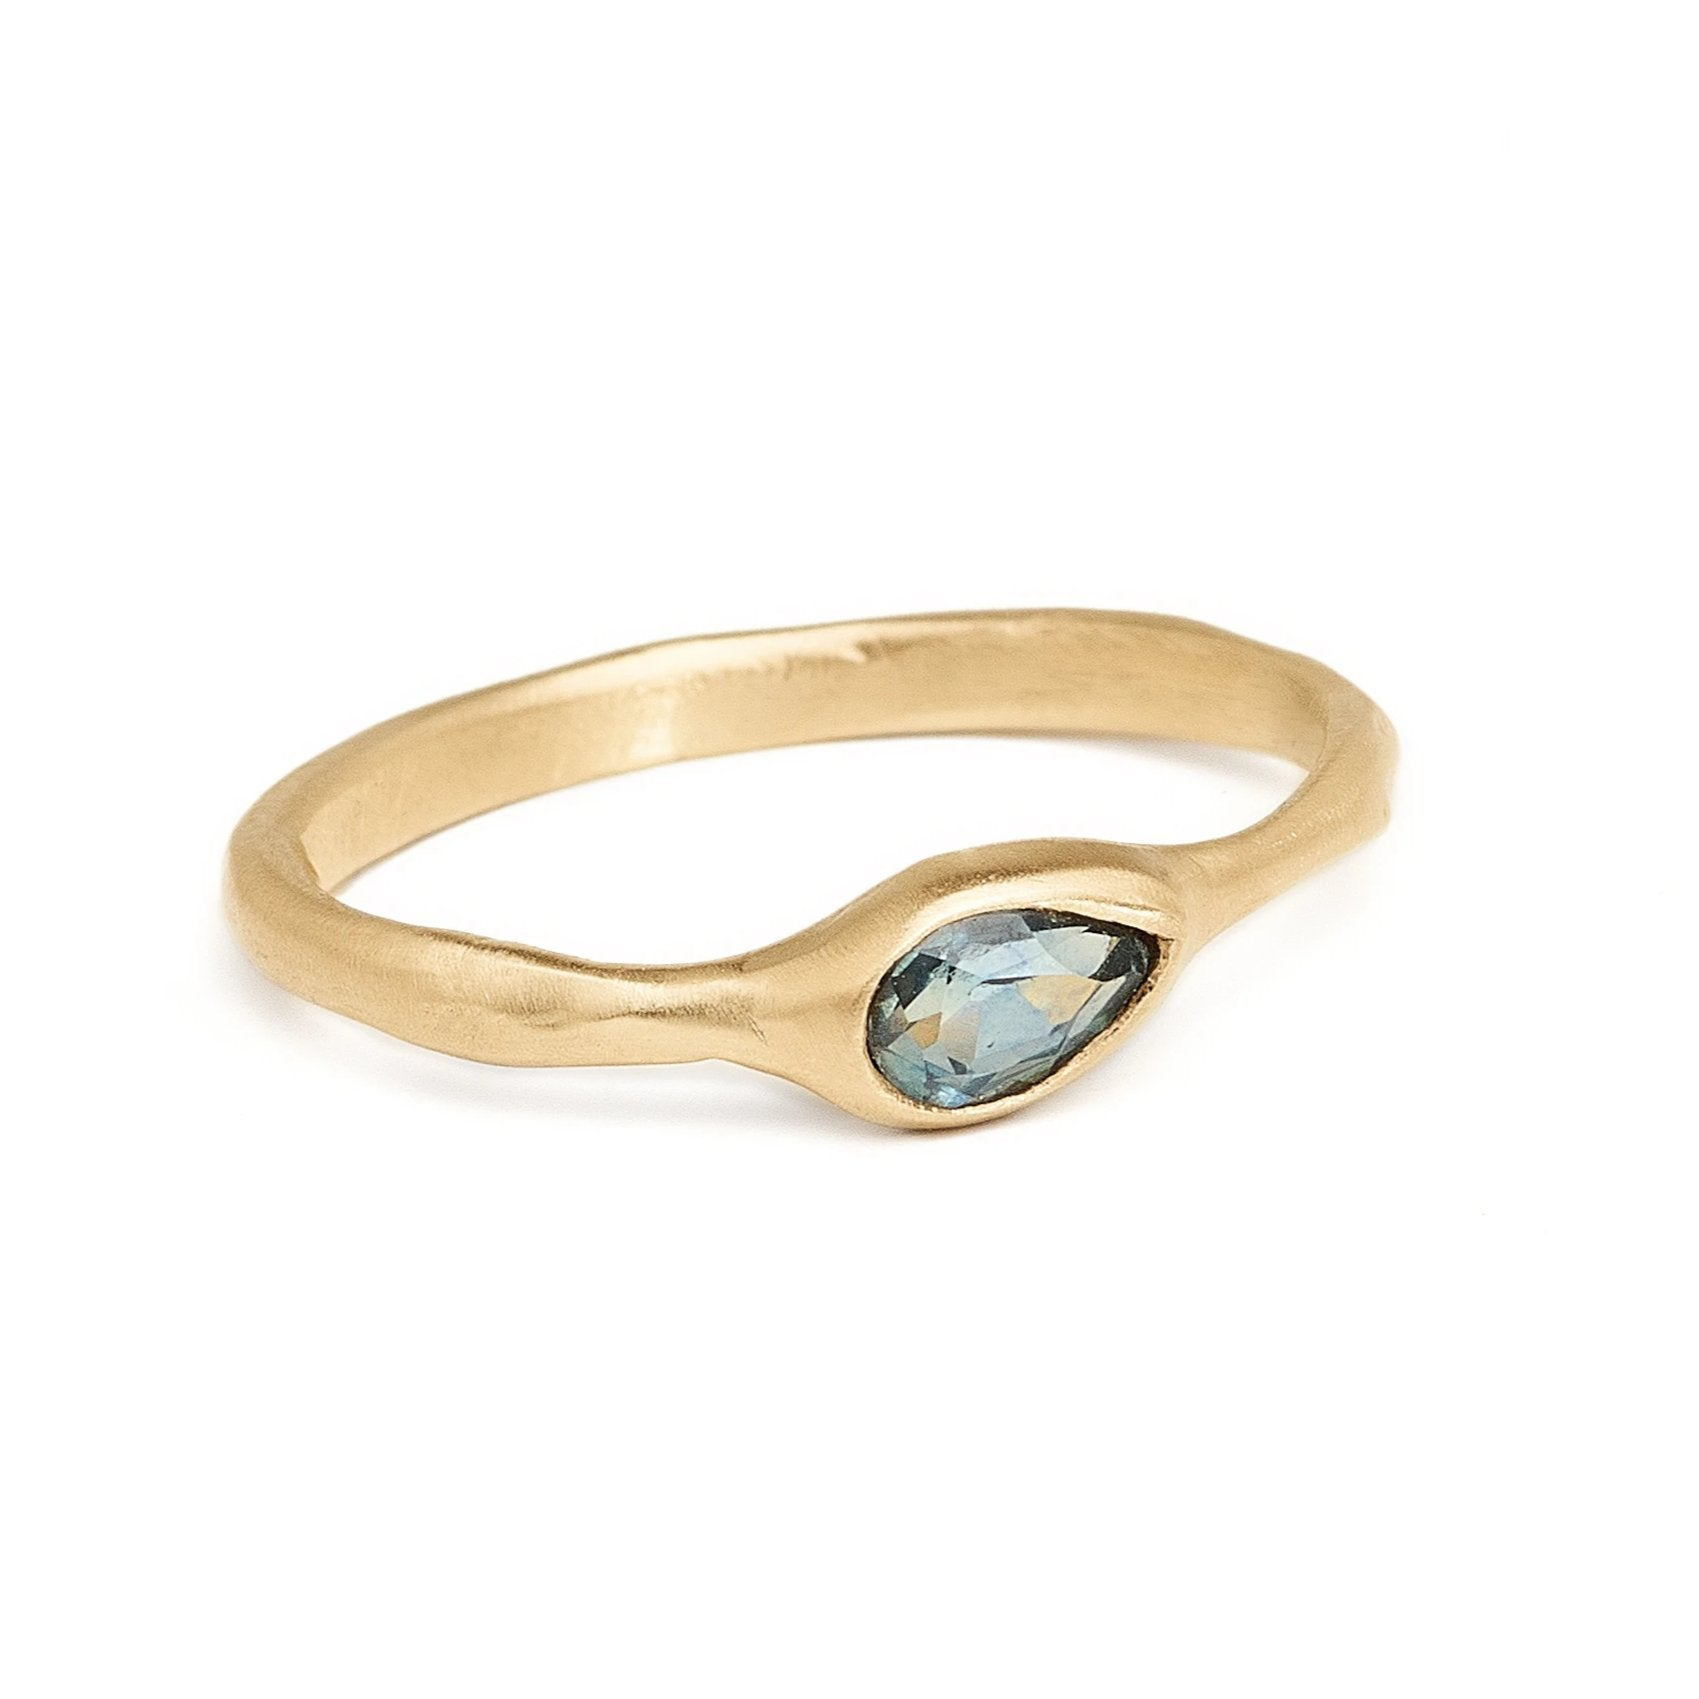 Pear shaped teal Montana sapphire delicate gold ring. Simple inexpensive alternative engagement ring.